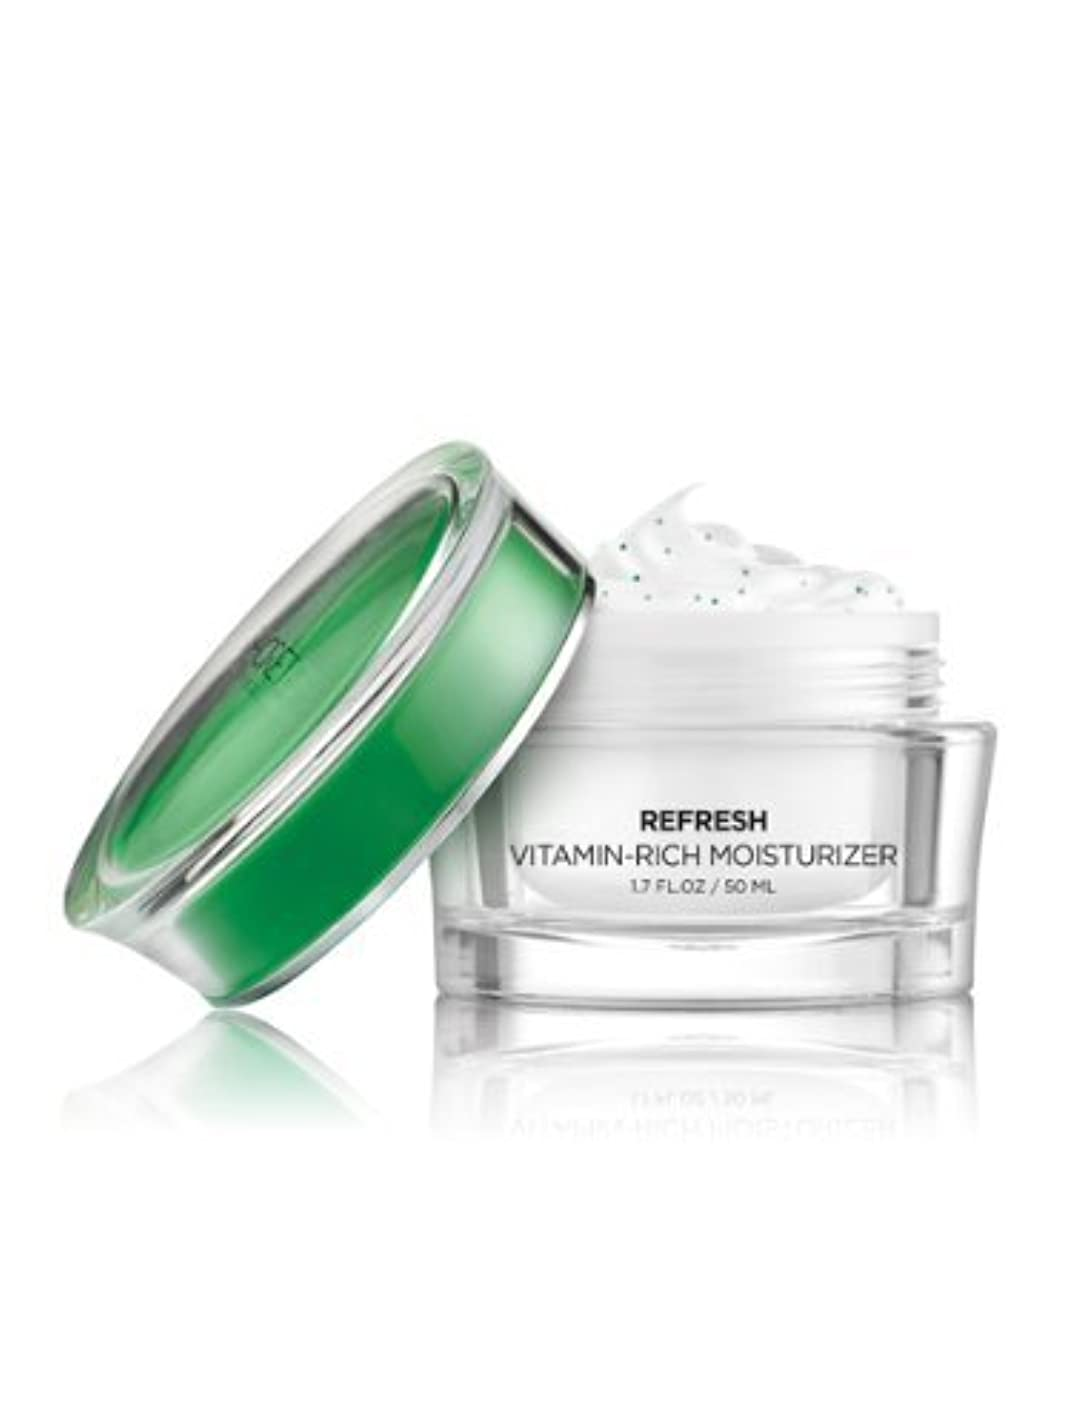 警察枠色世界を驚かせた化粧品!Seacret Age-defying Refresh - Vitamin Rich Moisturizer 1.7 Oz / 50ml [並行輸入品]